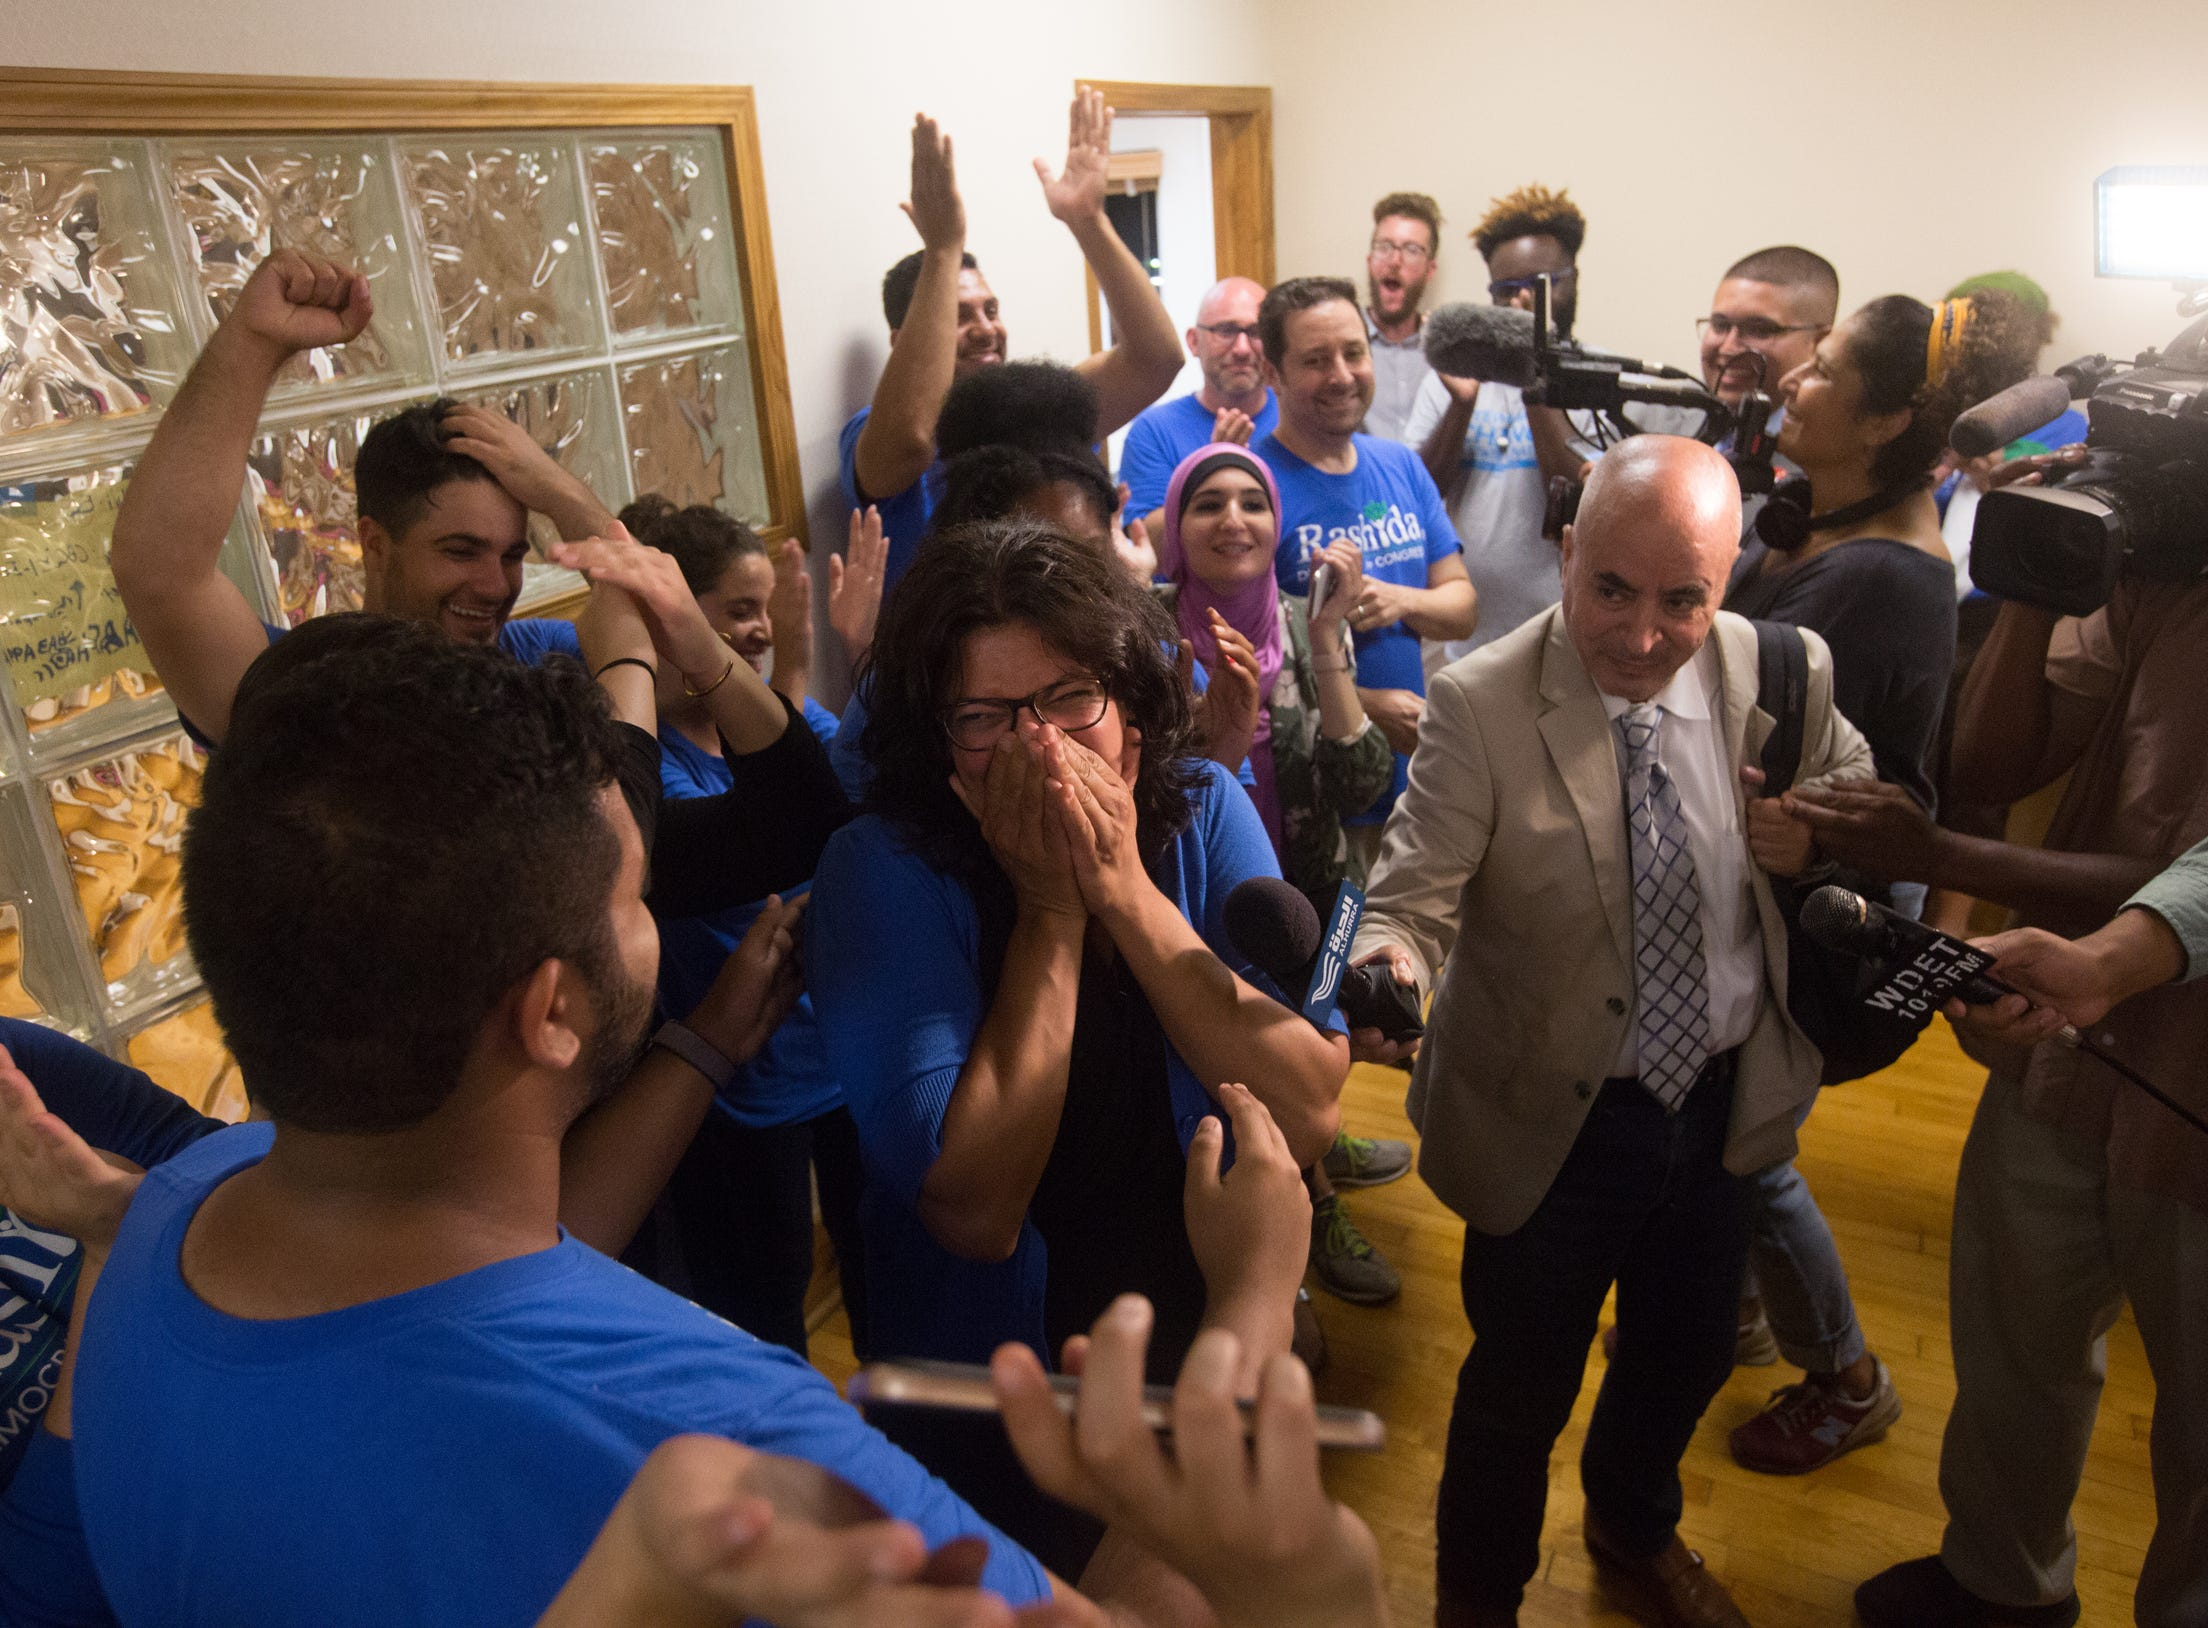 Rashida Tlaib celebrates after winning the Democratic Primary in Michigan's 13th District at one of Tlaib's field offices in Northwest Detroit on Aug. 7, 2018.